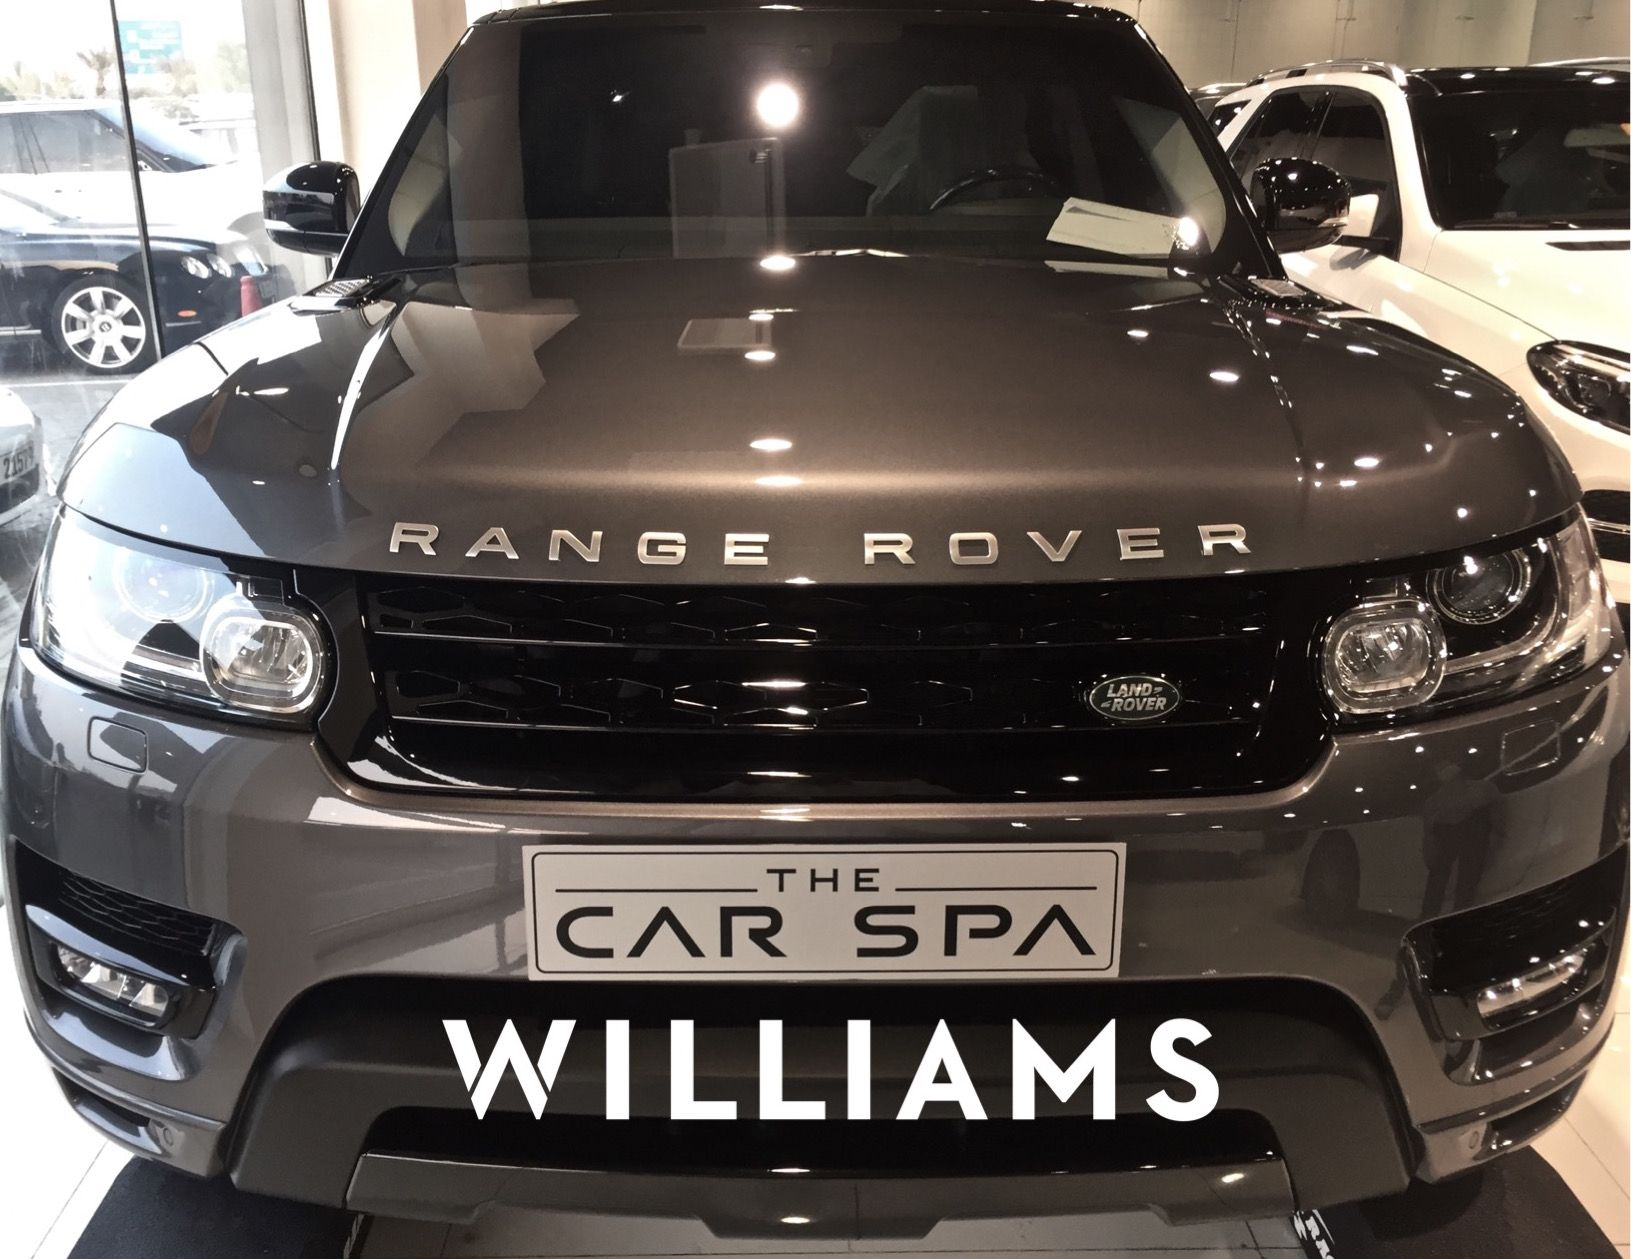 Williams Ceramic Coating Does Give That New Car Feeling Right After It S Applied This Range Rover Here Attests Walk Into Car Vehicle Care Car Detailing